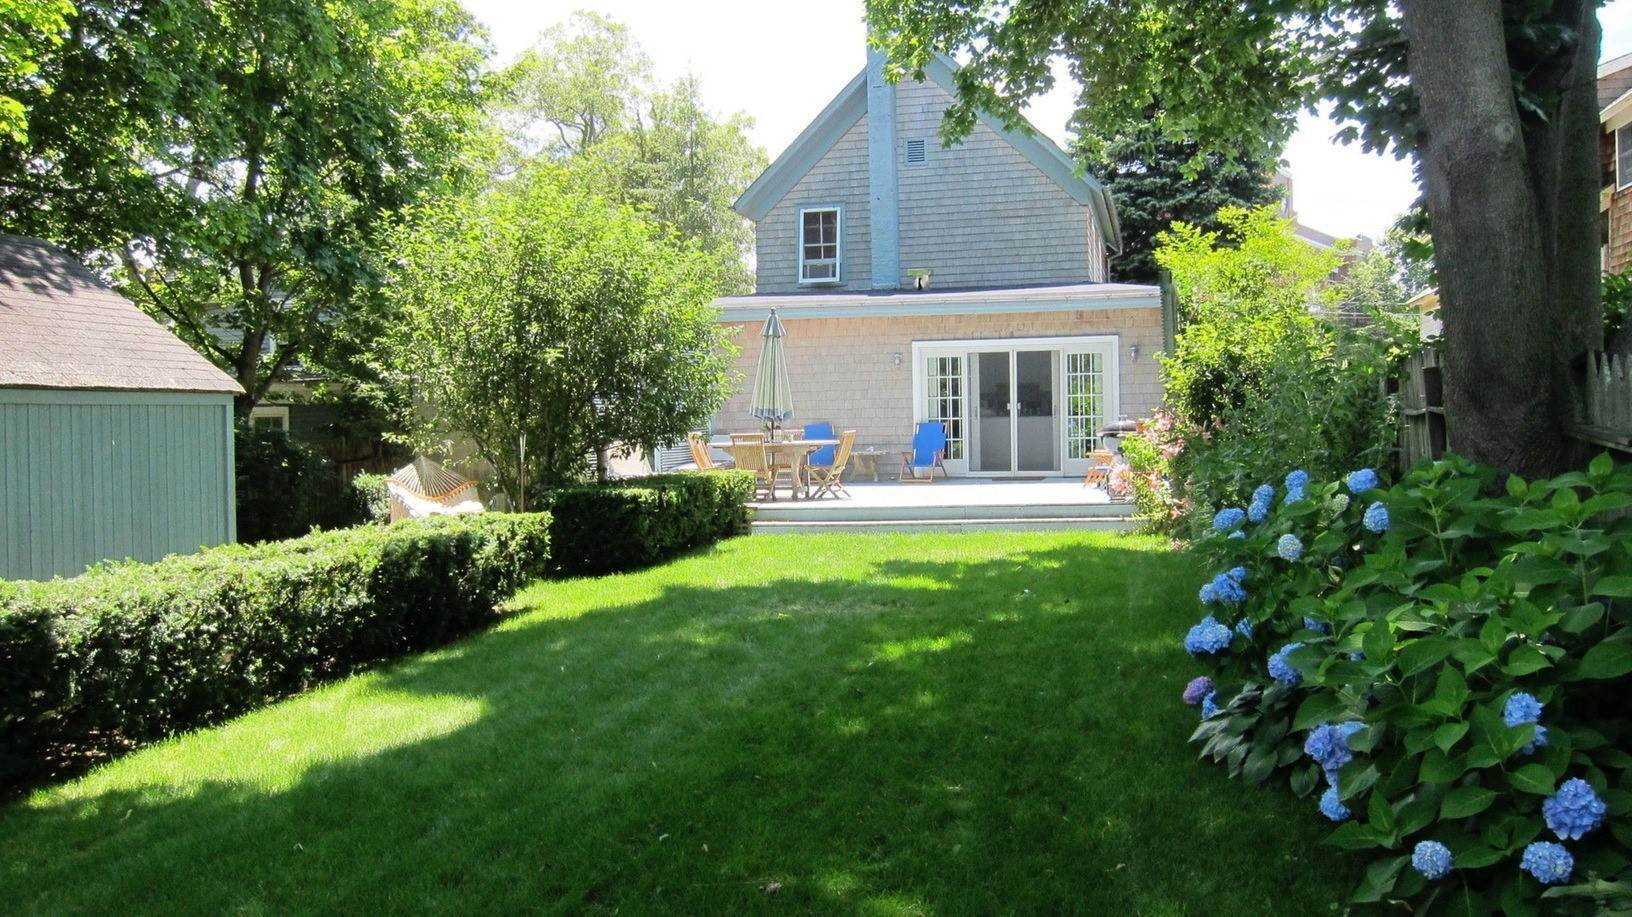 2. Single Family Home at Sag Harbor Village Rental Sag Harbor, NY 11963